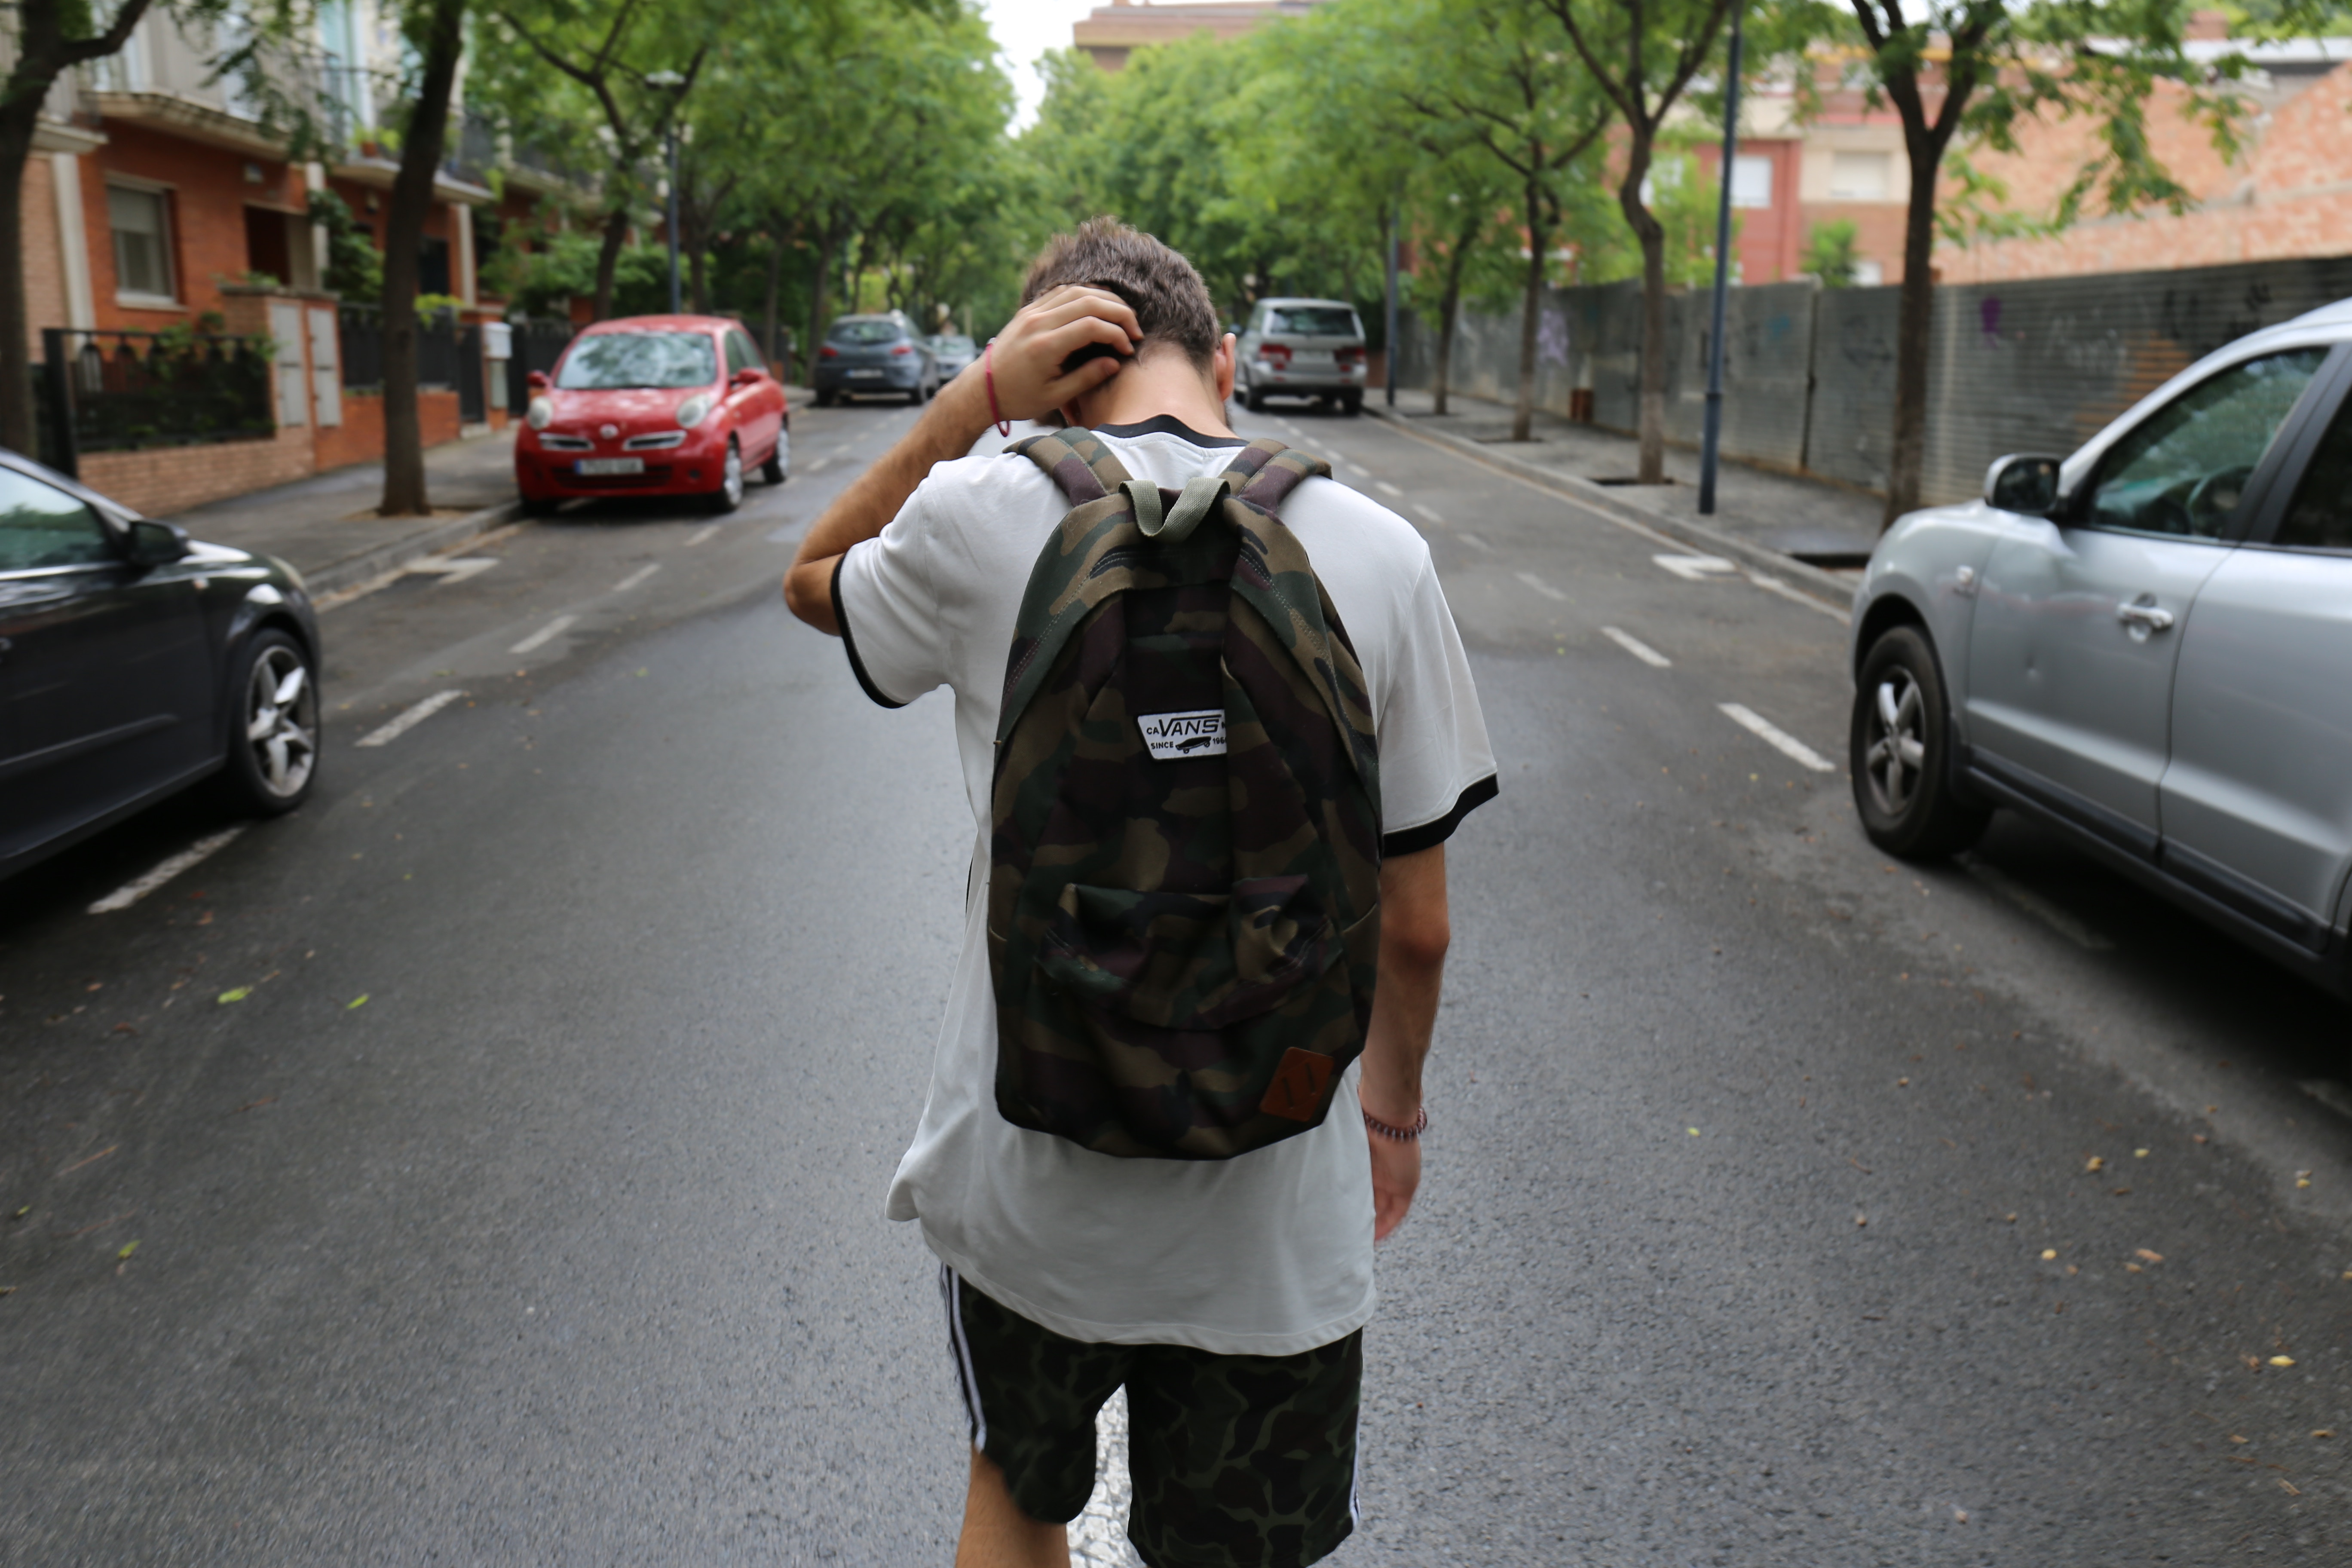 teenager with backpack walking away from viewer scratching his neck depressively